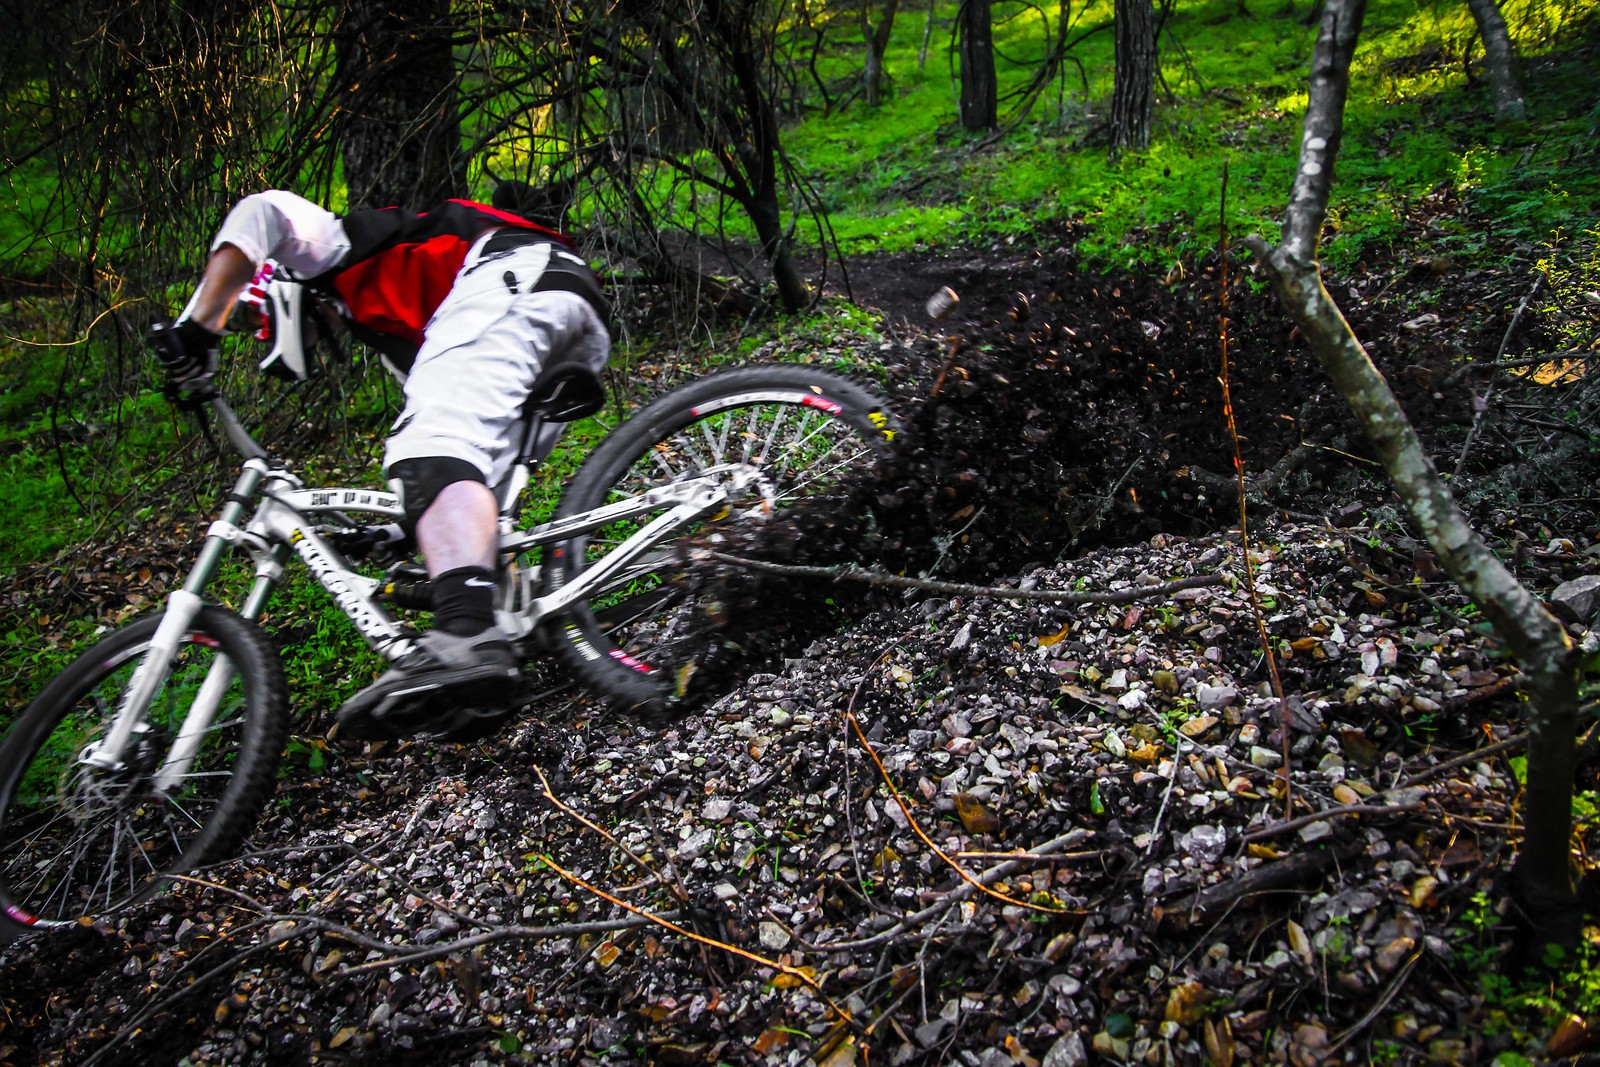 IMG 2649 - GnarHuck - Mountain Biking Pictures - Vital MTB